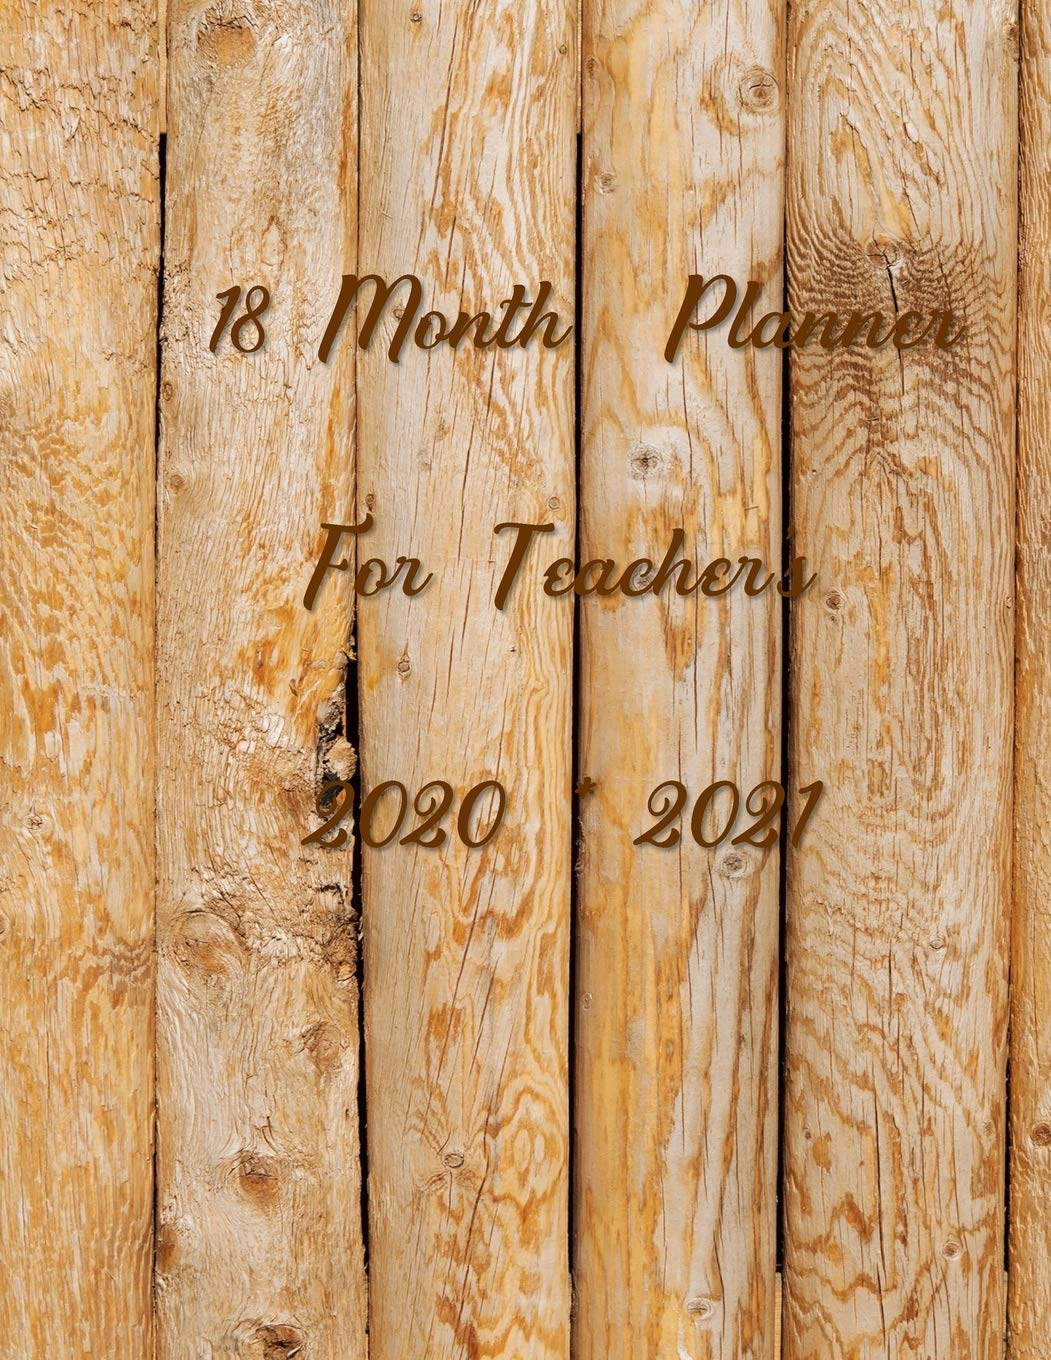 18 Month Planner For Teachers 2020 – 2021: It's easy for teachers to get through the year and stay organized with this planner. Pages for contacts, … important and urgent things, and appointments